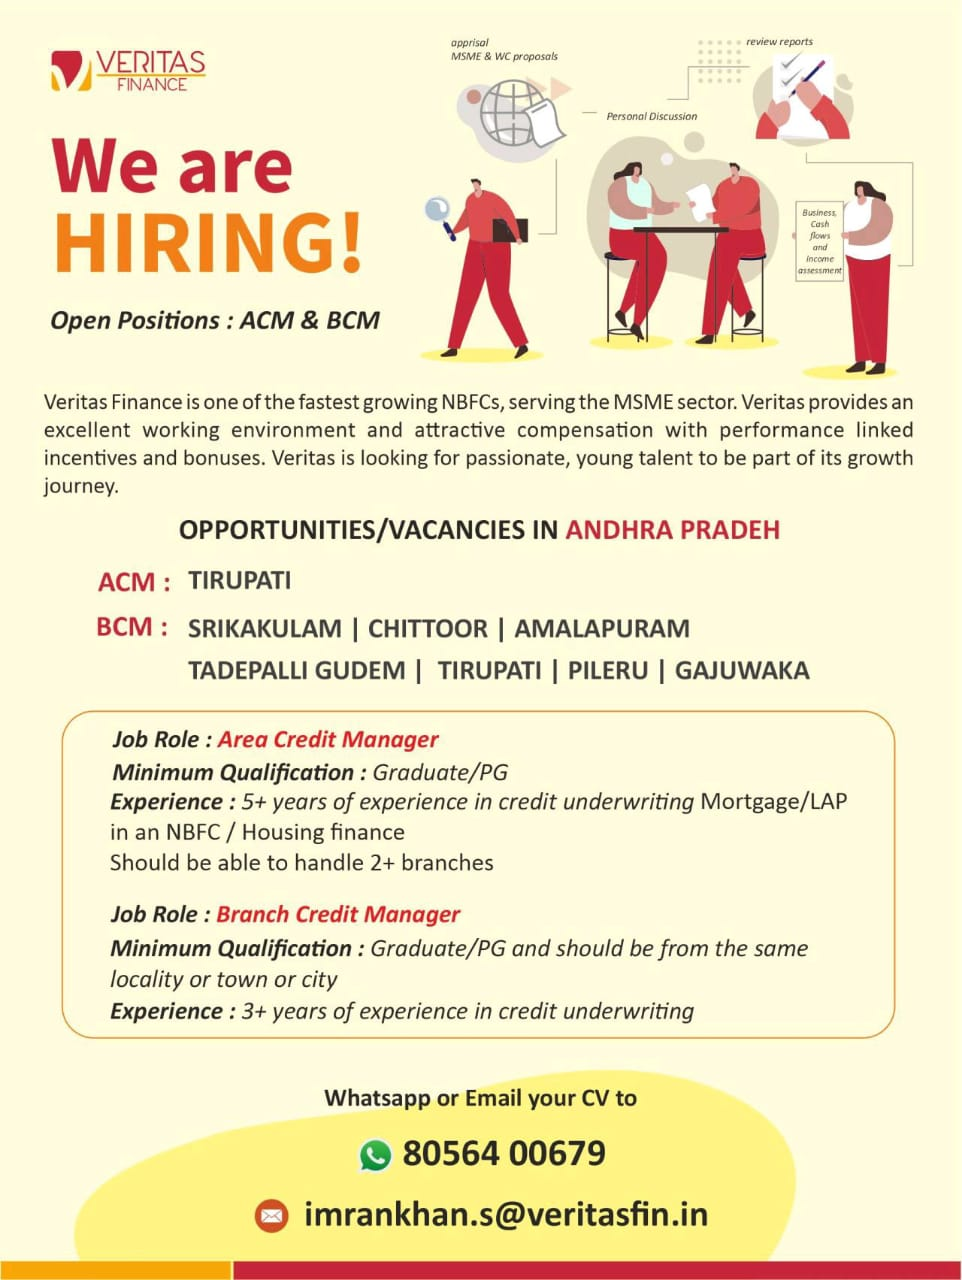 Hiring Branch Credit Manager & Area Credit Manager